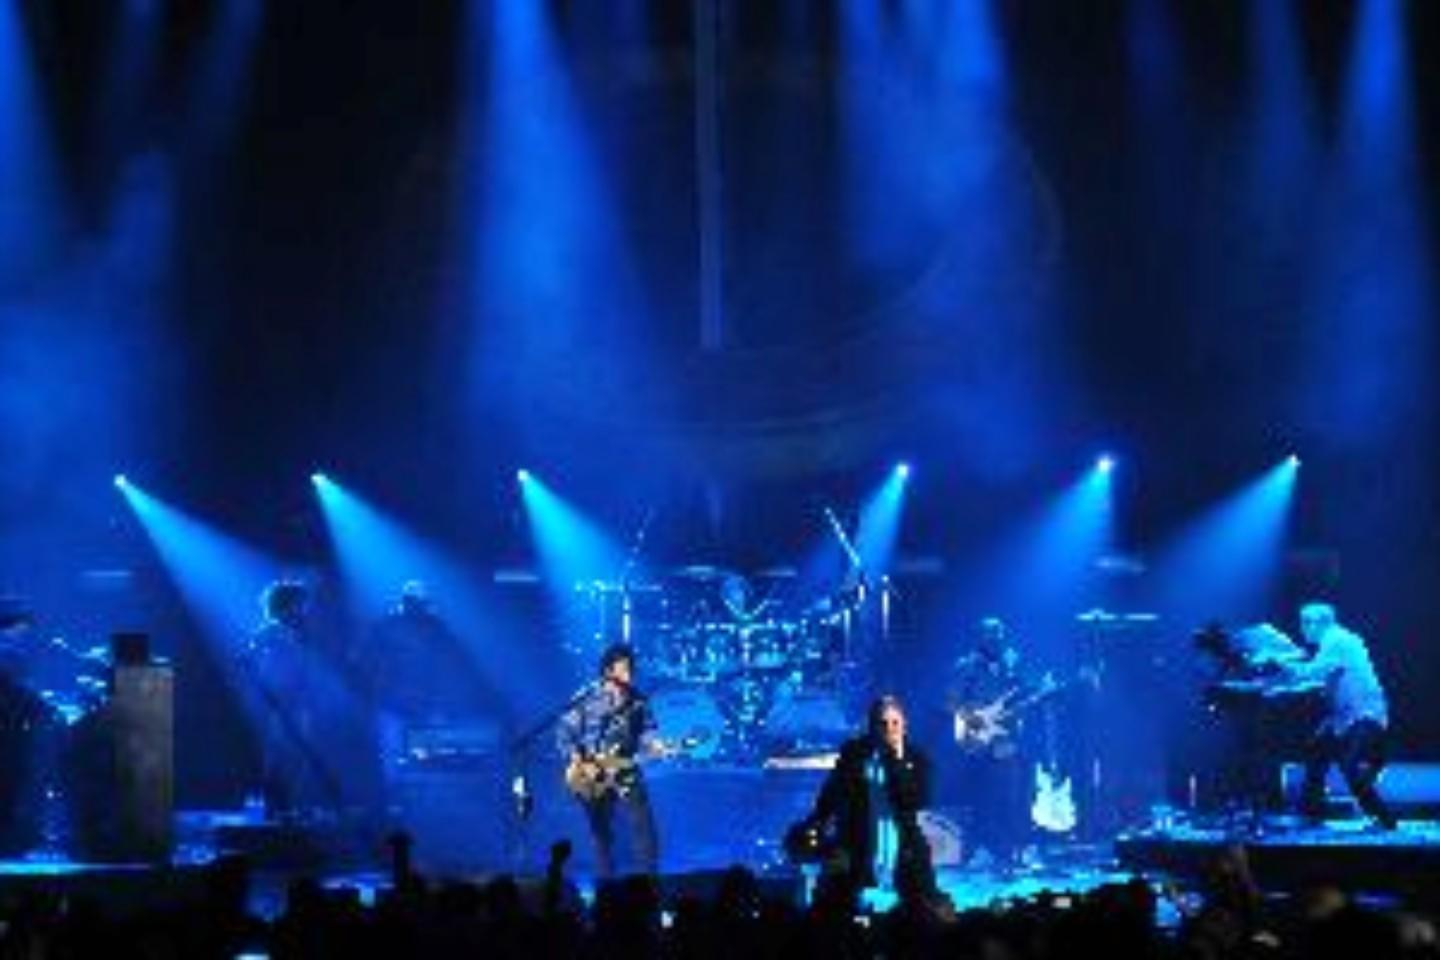 Toto Tickets | Toto Tour 2018 and Concert Tickets - viagogo